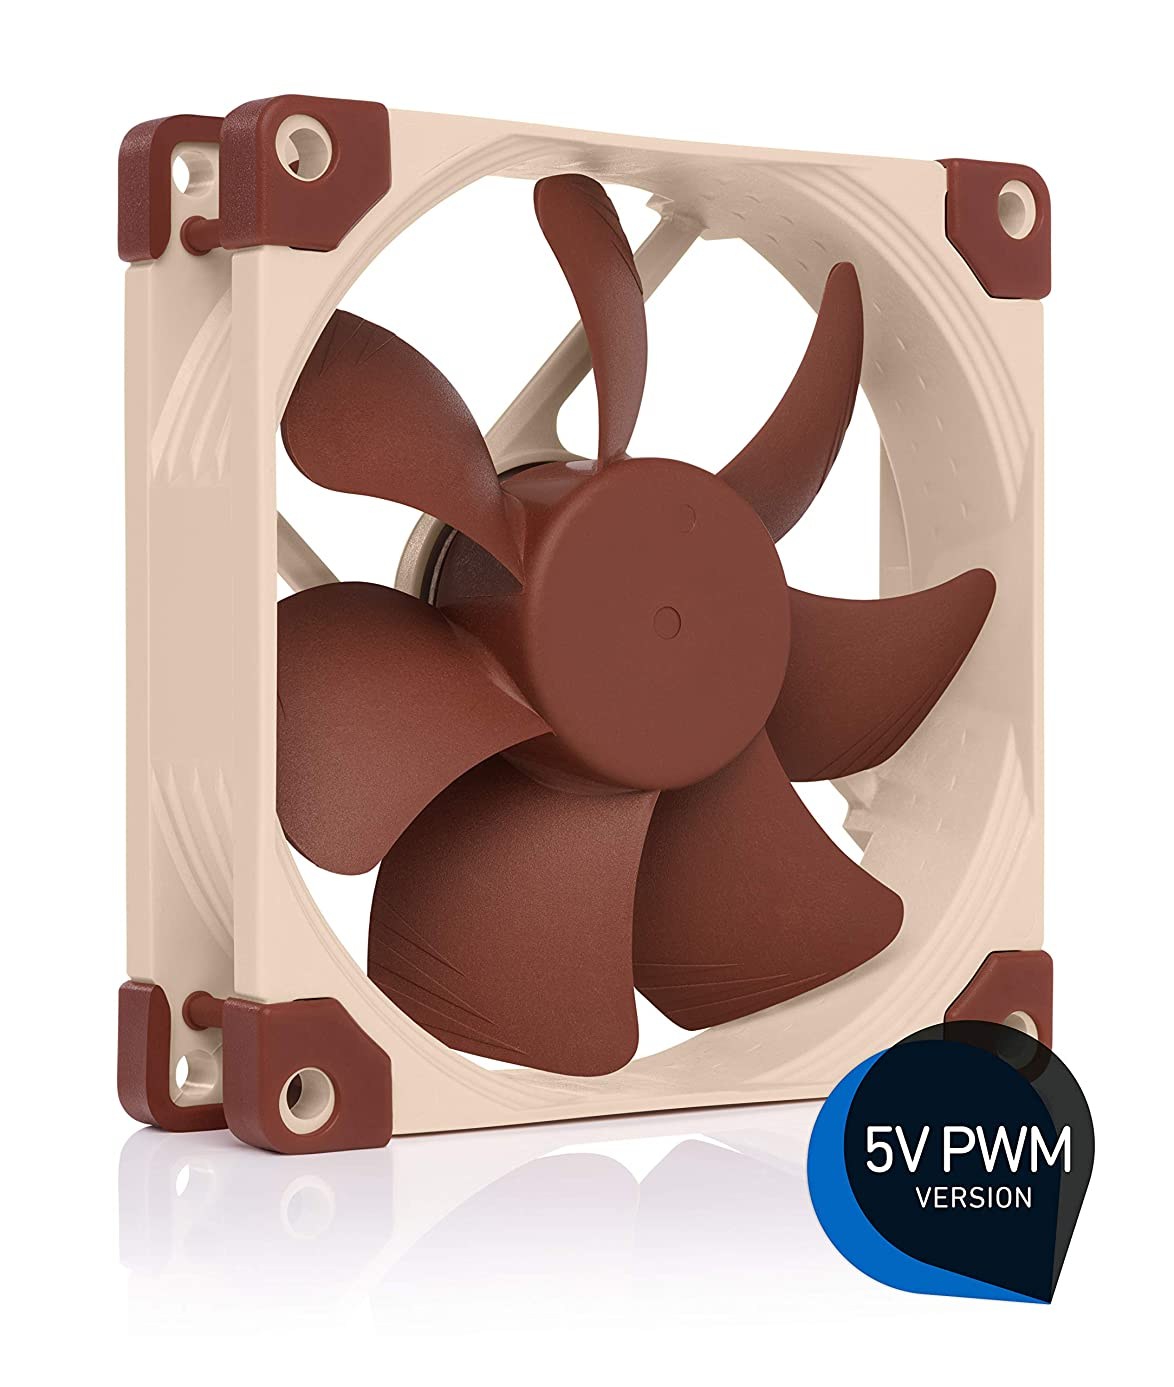 Noctua NF-A9 5V PWM, Premium Quiet Fan with USB Power Adaptor Cable, 4-Pin, 5V Version (92mm, Brown)